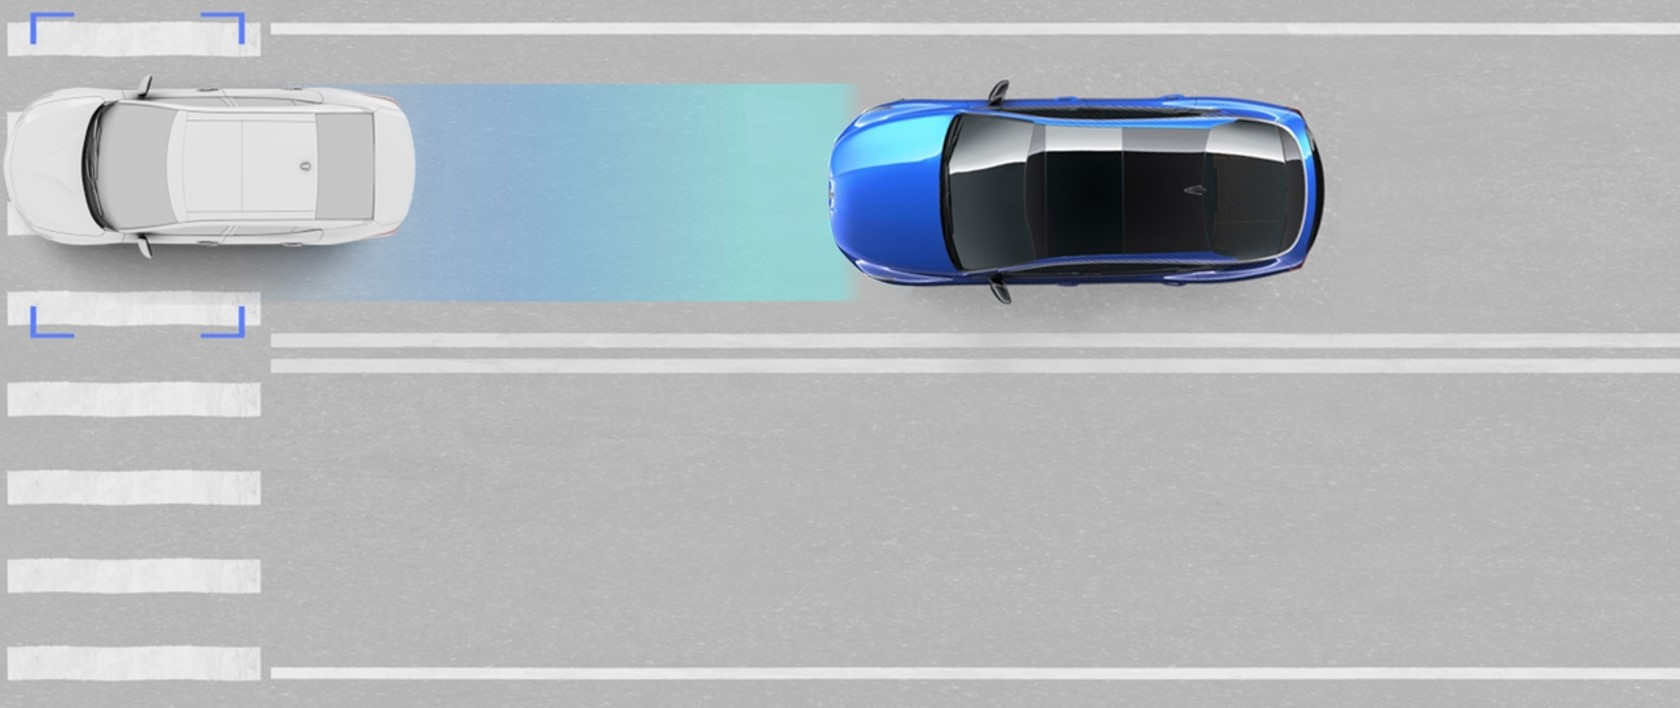 Forward Collision-Avoidance Assist (FCA)